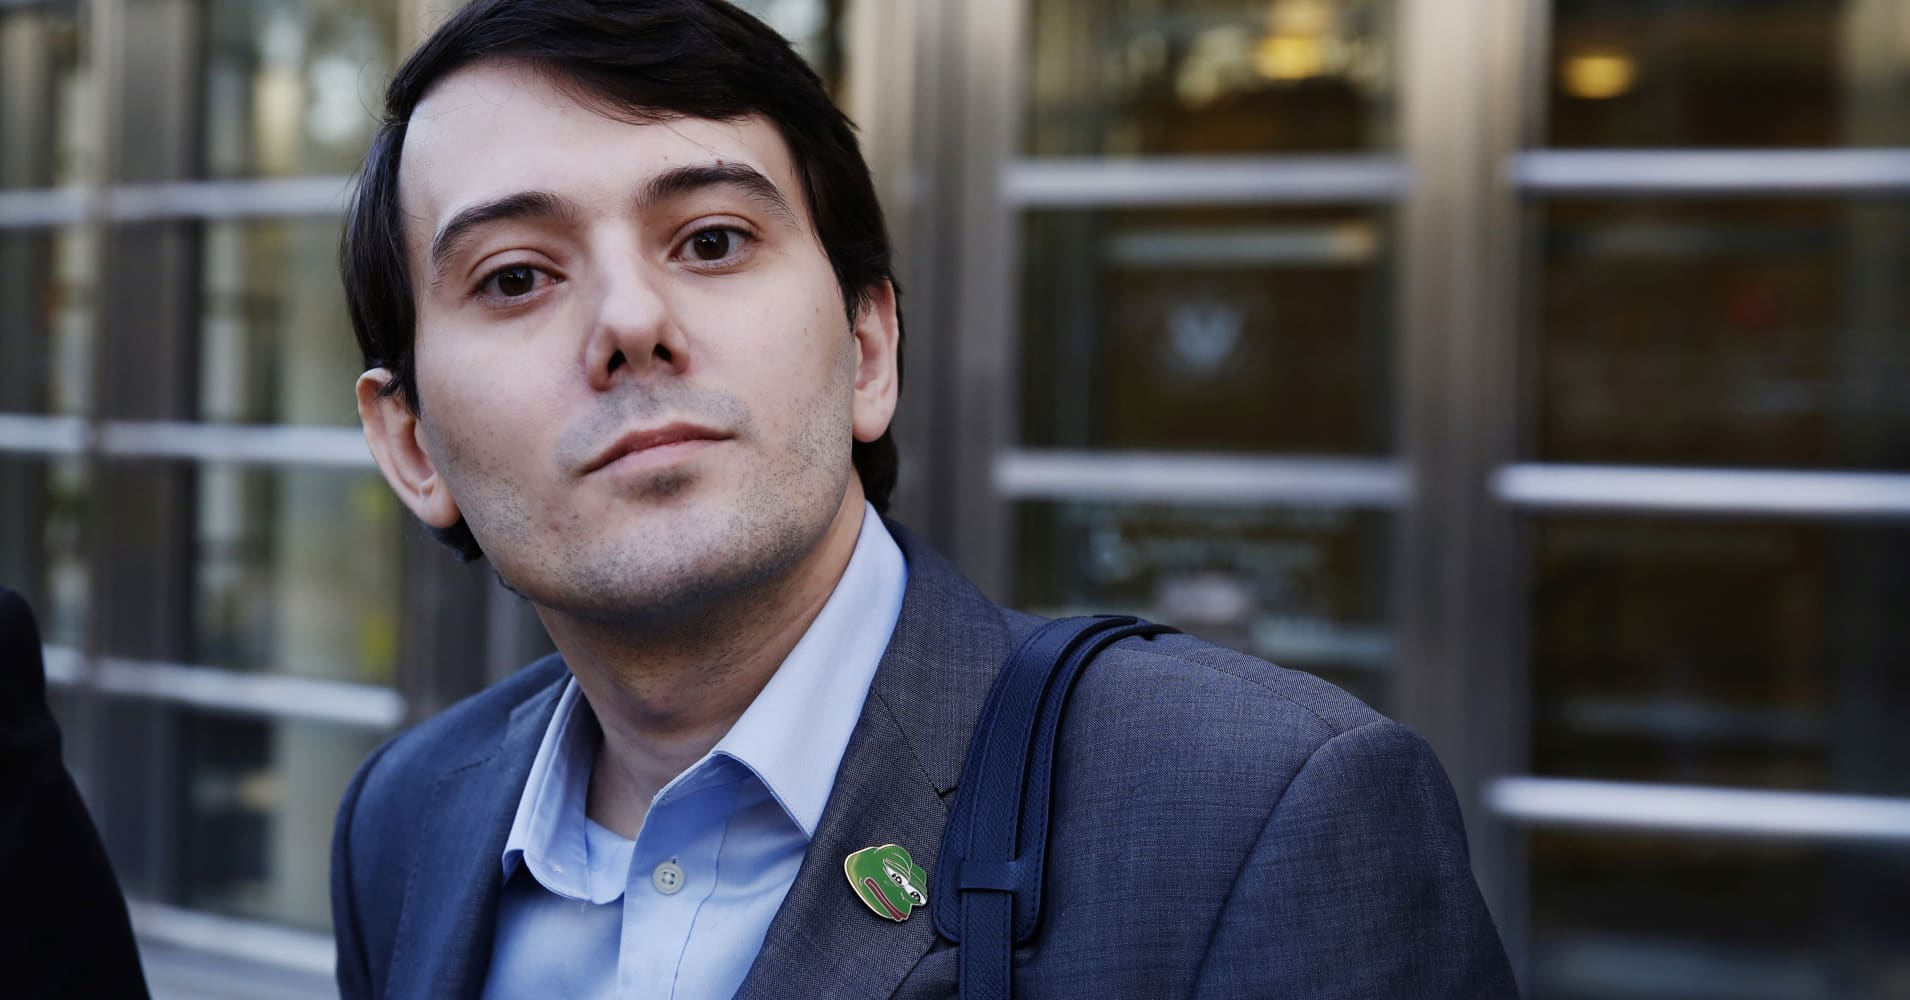 'Pharma Bro' defies advice to keep quiet ahead of fraud trial Monday